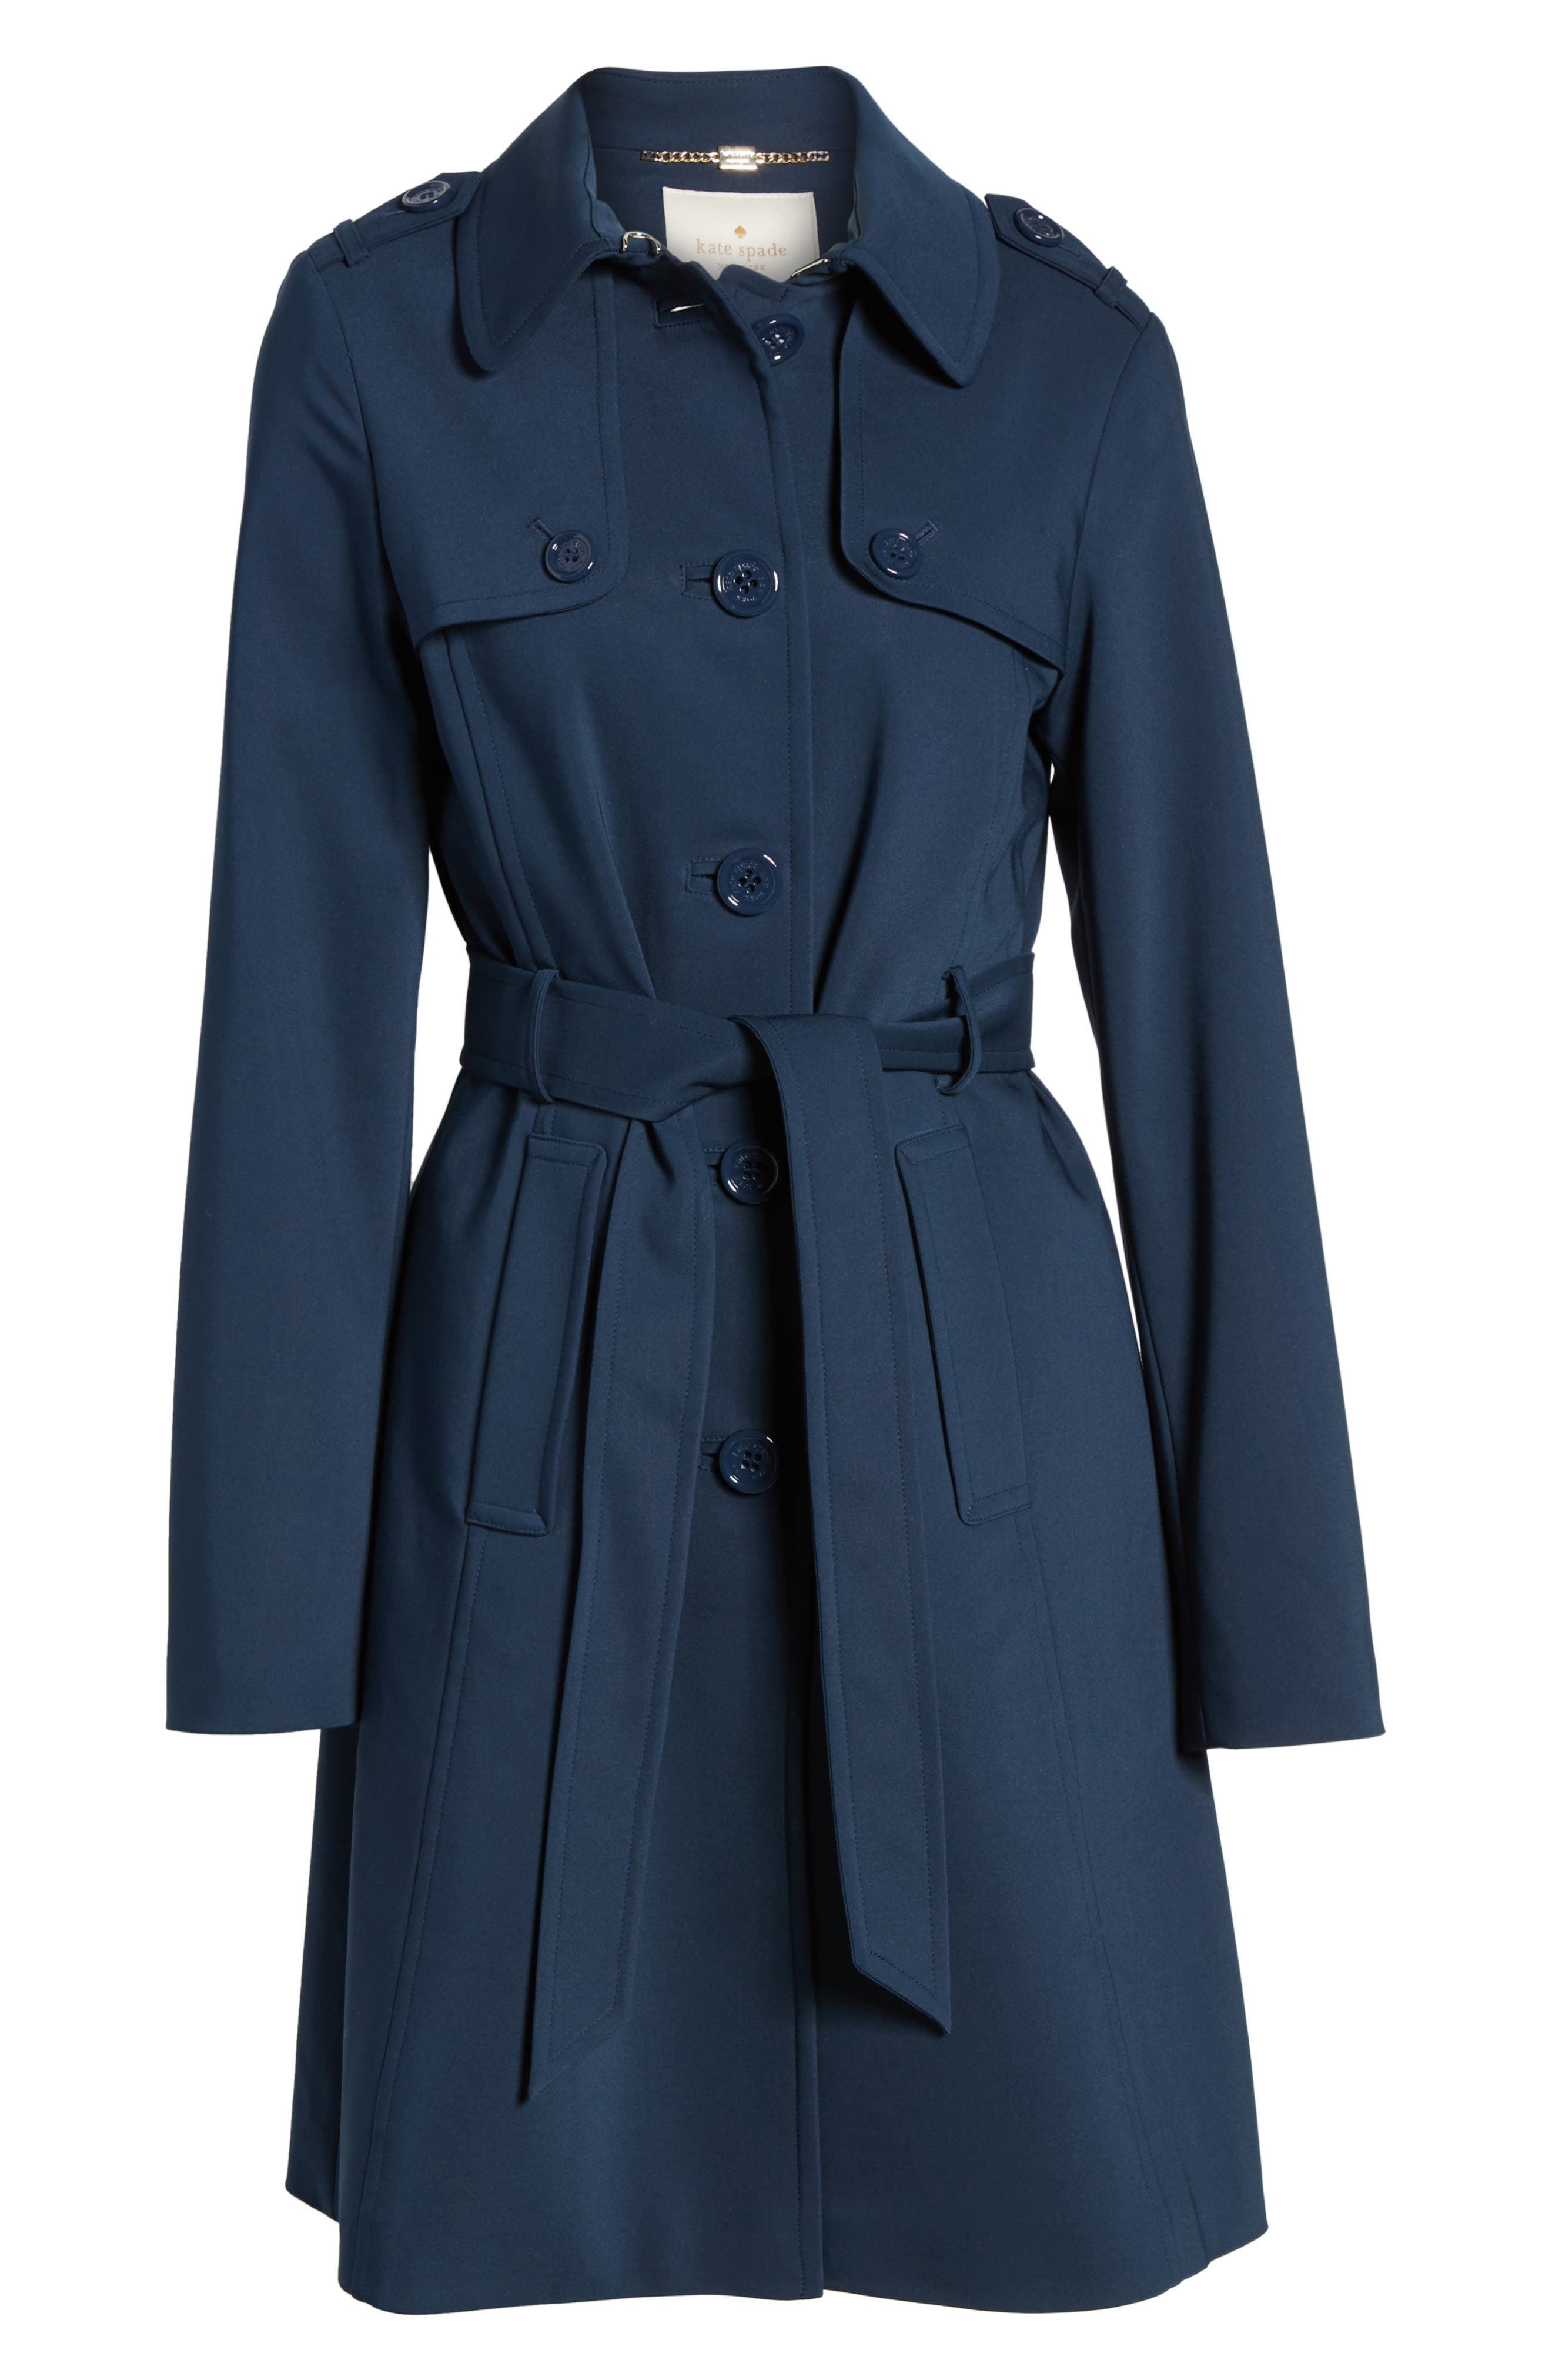 3-in-1 trench coat,                             Alternate thumbnail 6, color,                             Rich Navy